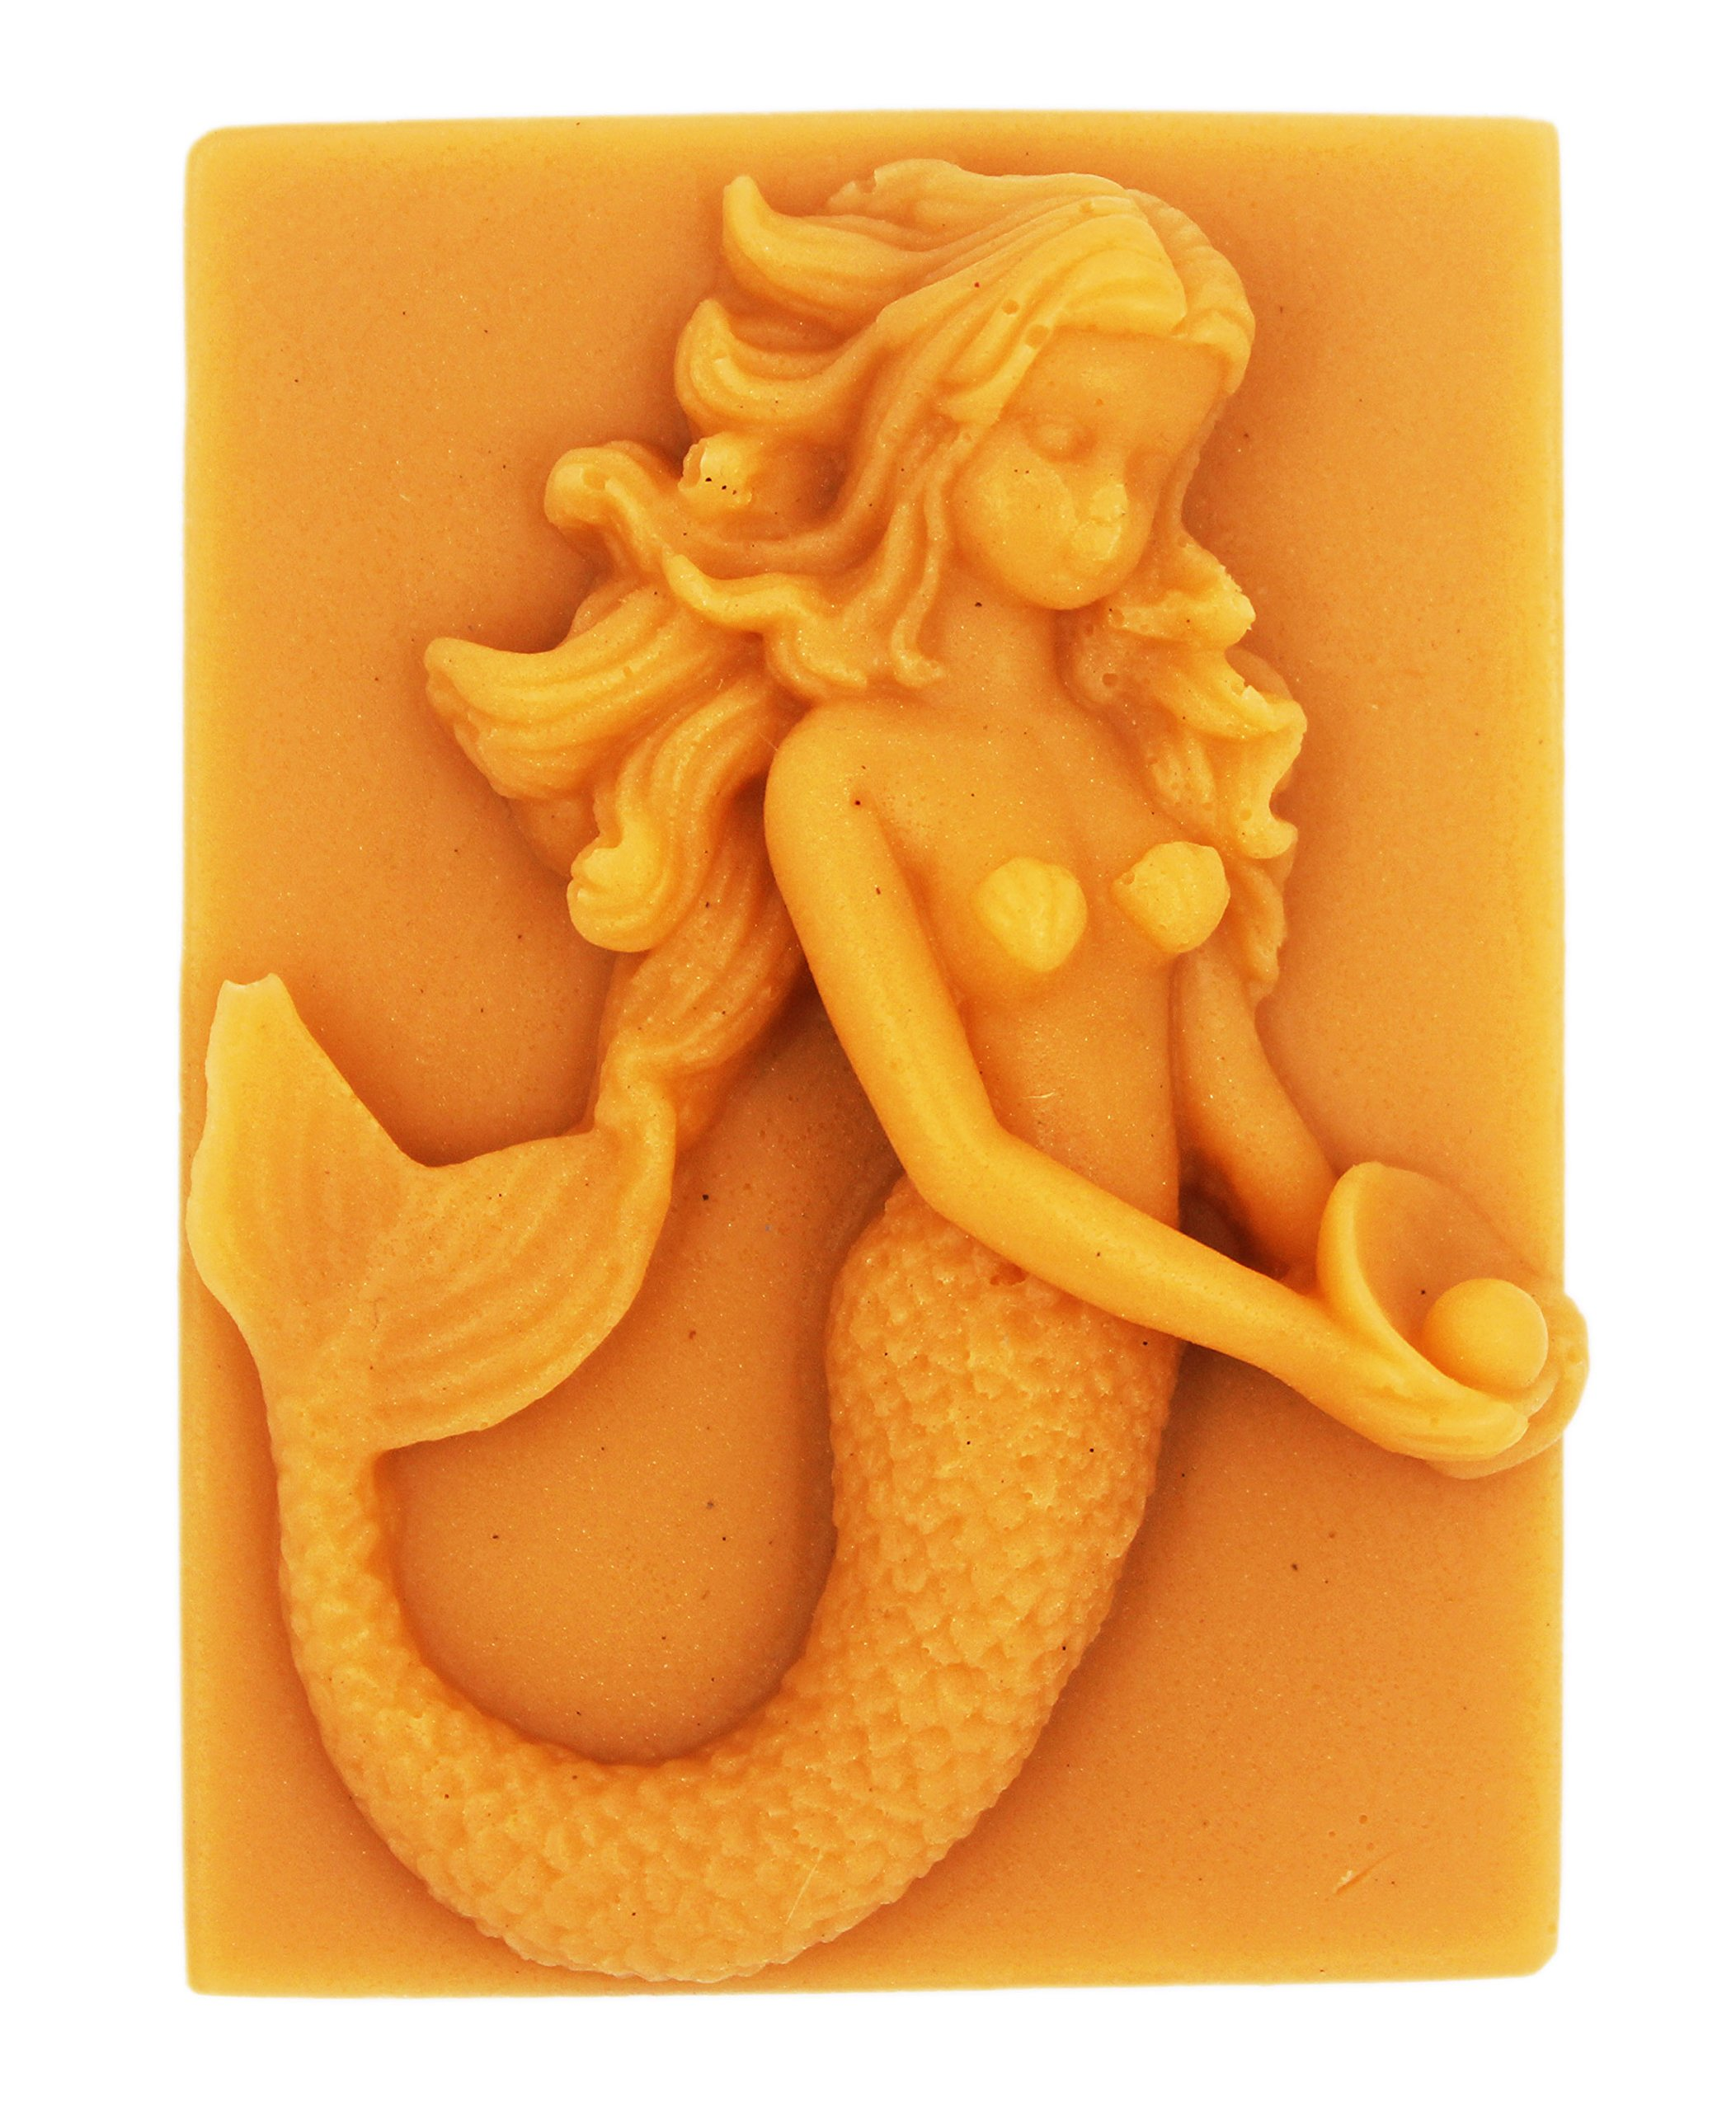 Longzang Mermaid mould S282 Craft Art Silicone Soap mold Craft Molds DIY Handmade soap molds